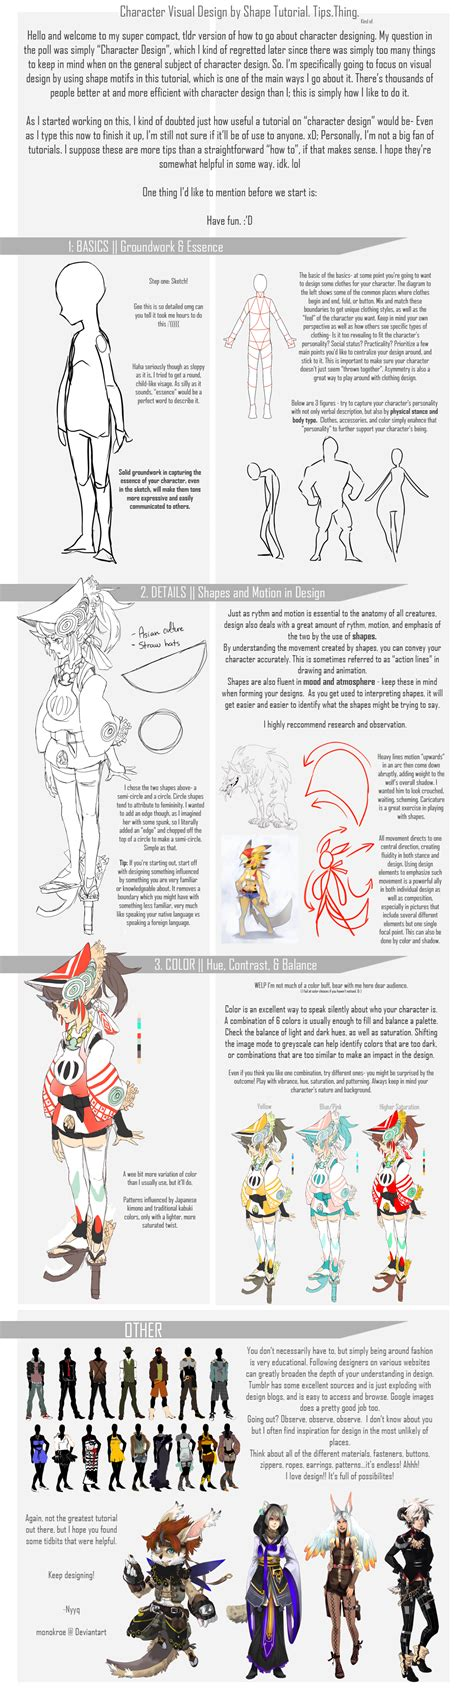 tutorial design character basic character design by shape by monokroe on deviantart